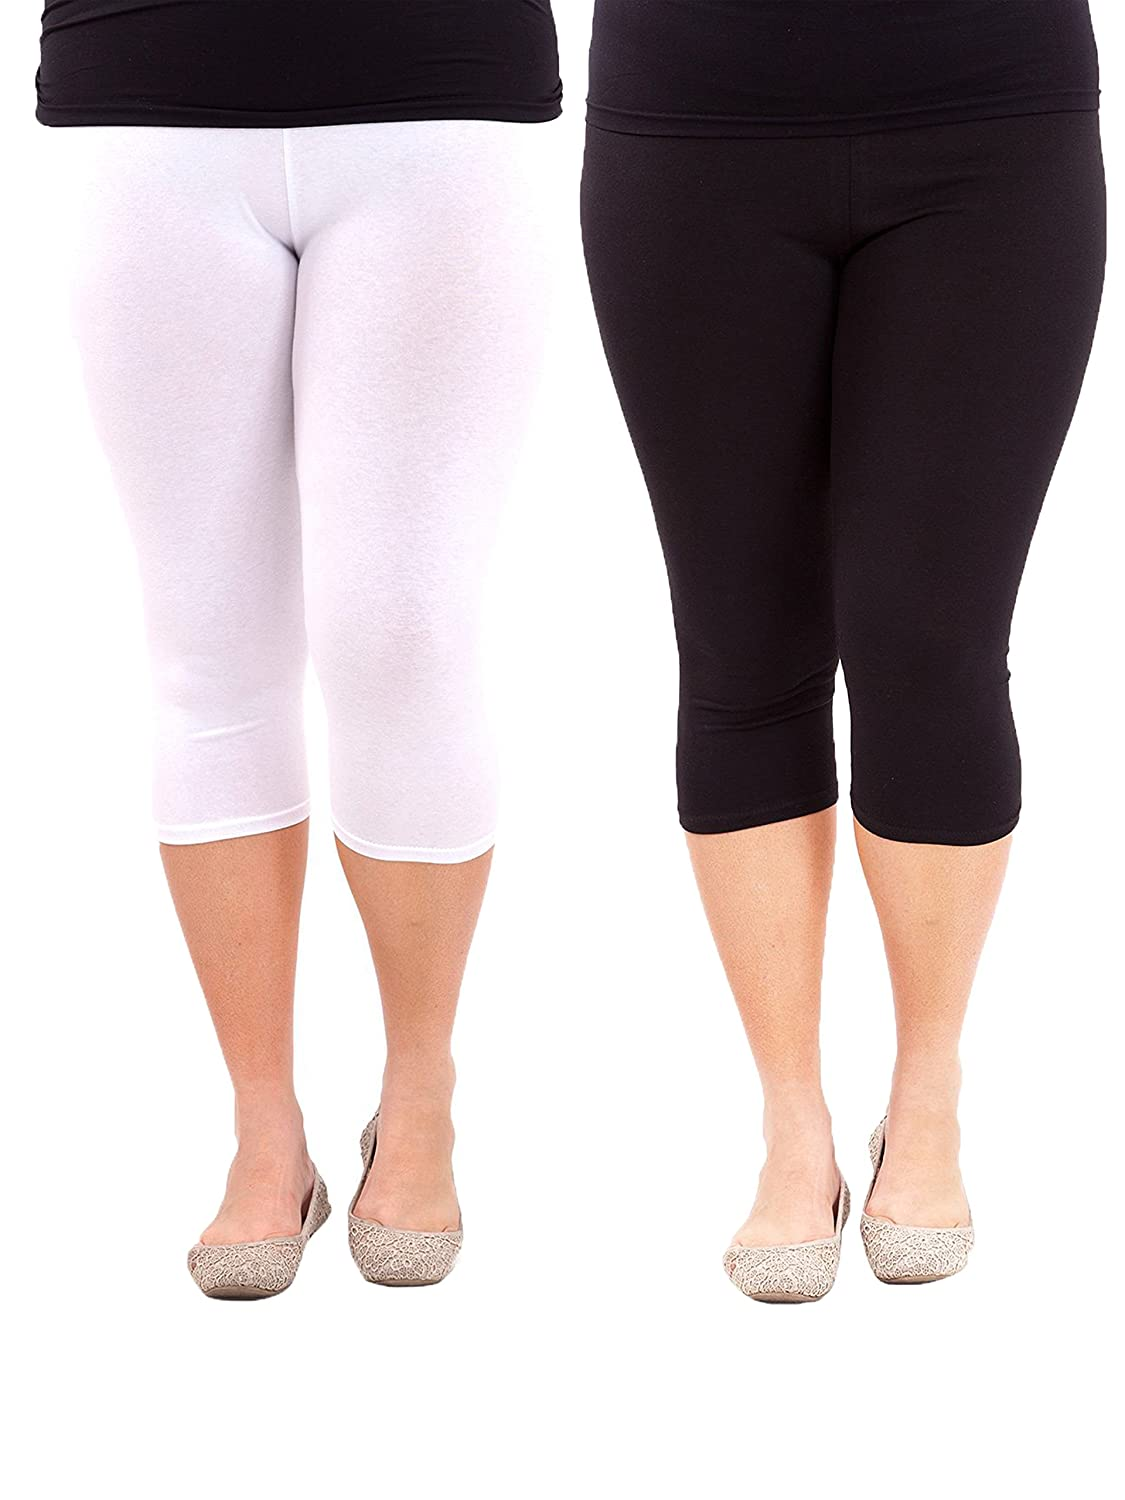 American Trends Women's Plus Size Lightweight 3/4 Length Breathable Leggings ATACAS0984P0000